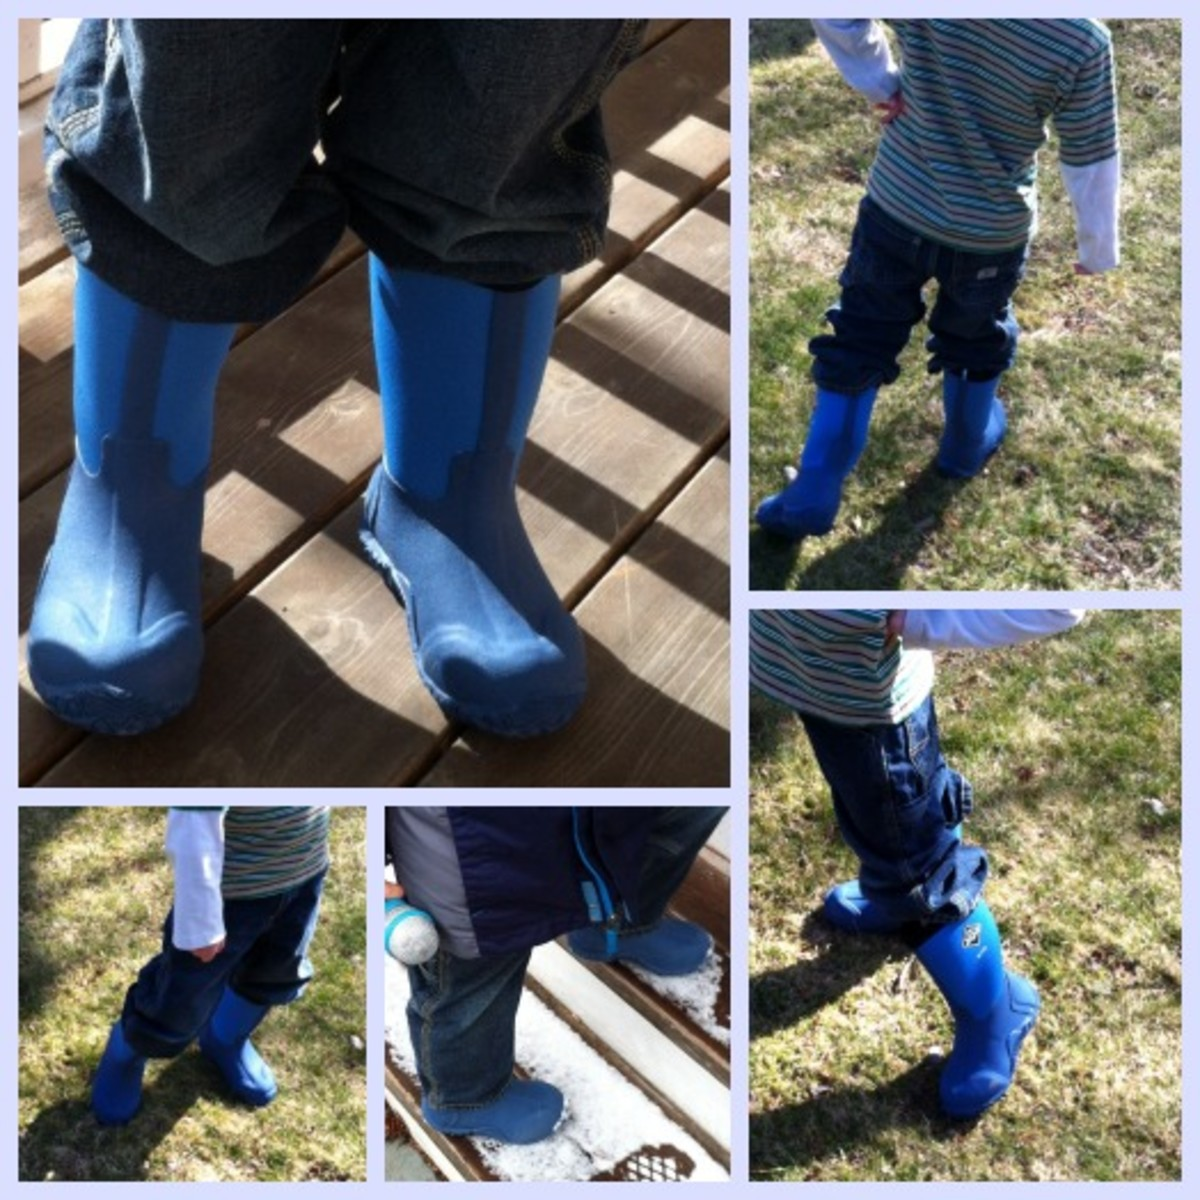 The Muck Boot Company, Waterproof Boots for Kids - MomTrendsMomTrends